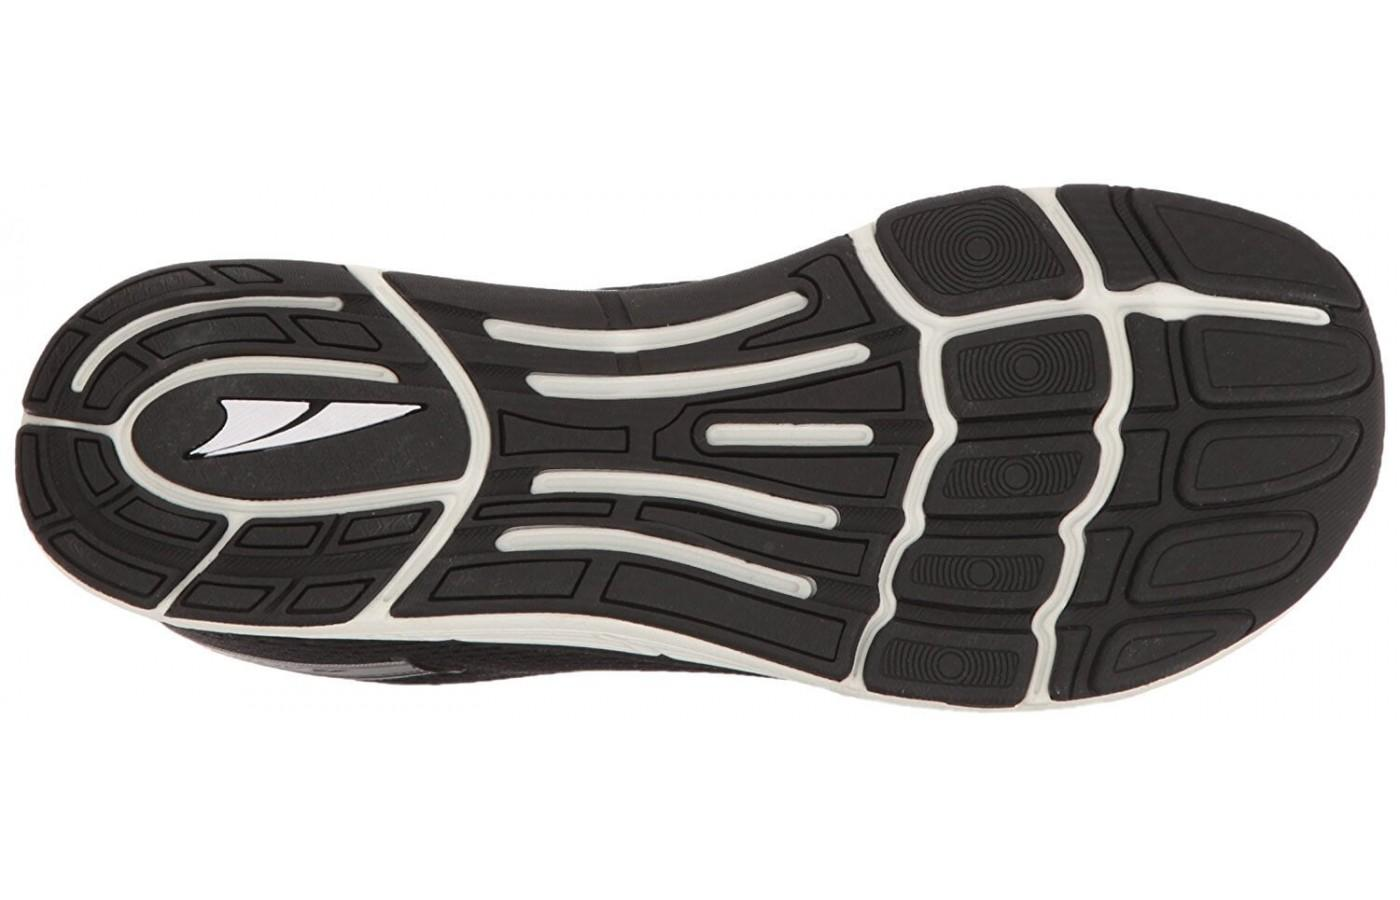 The outsole provides a lot more traction than it seems